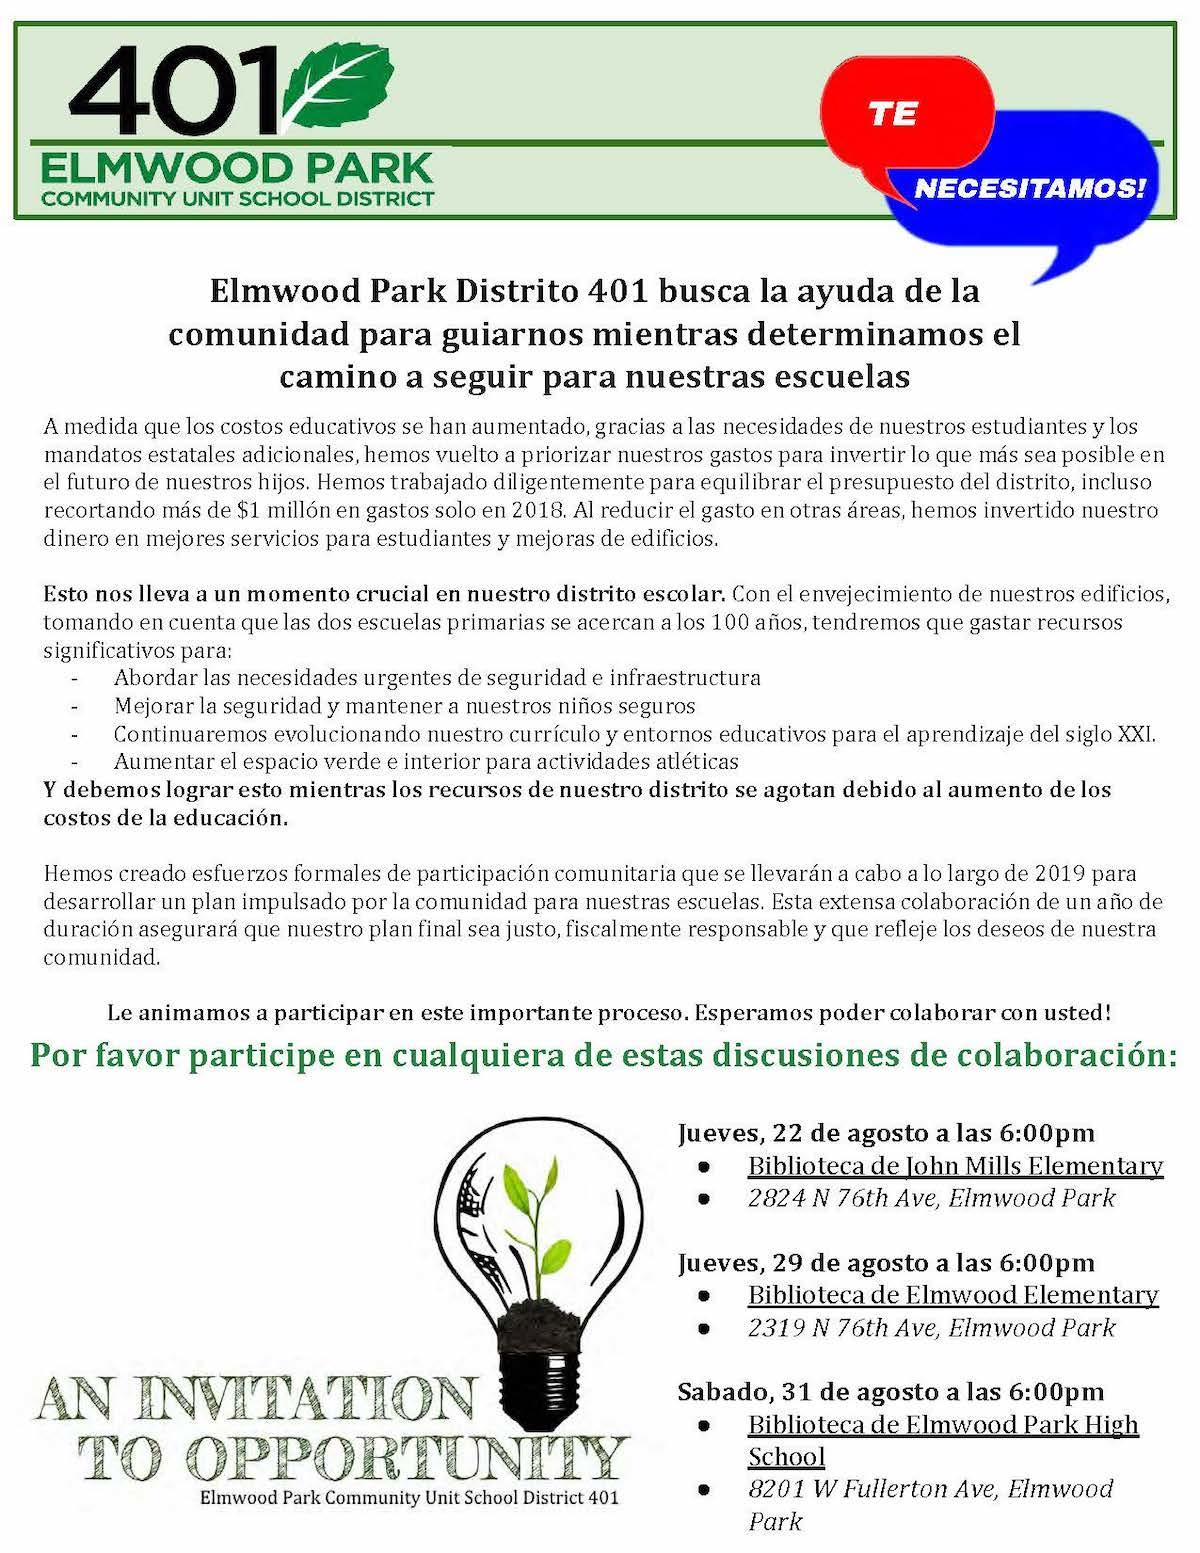 Community engagement flyer in Spanish